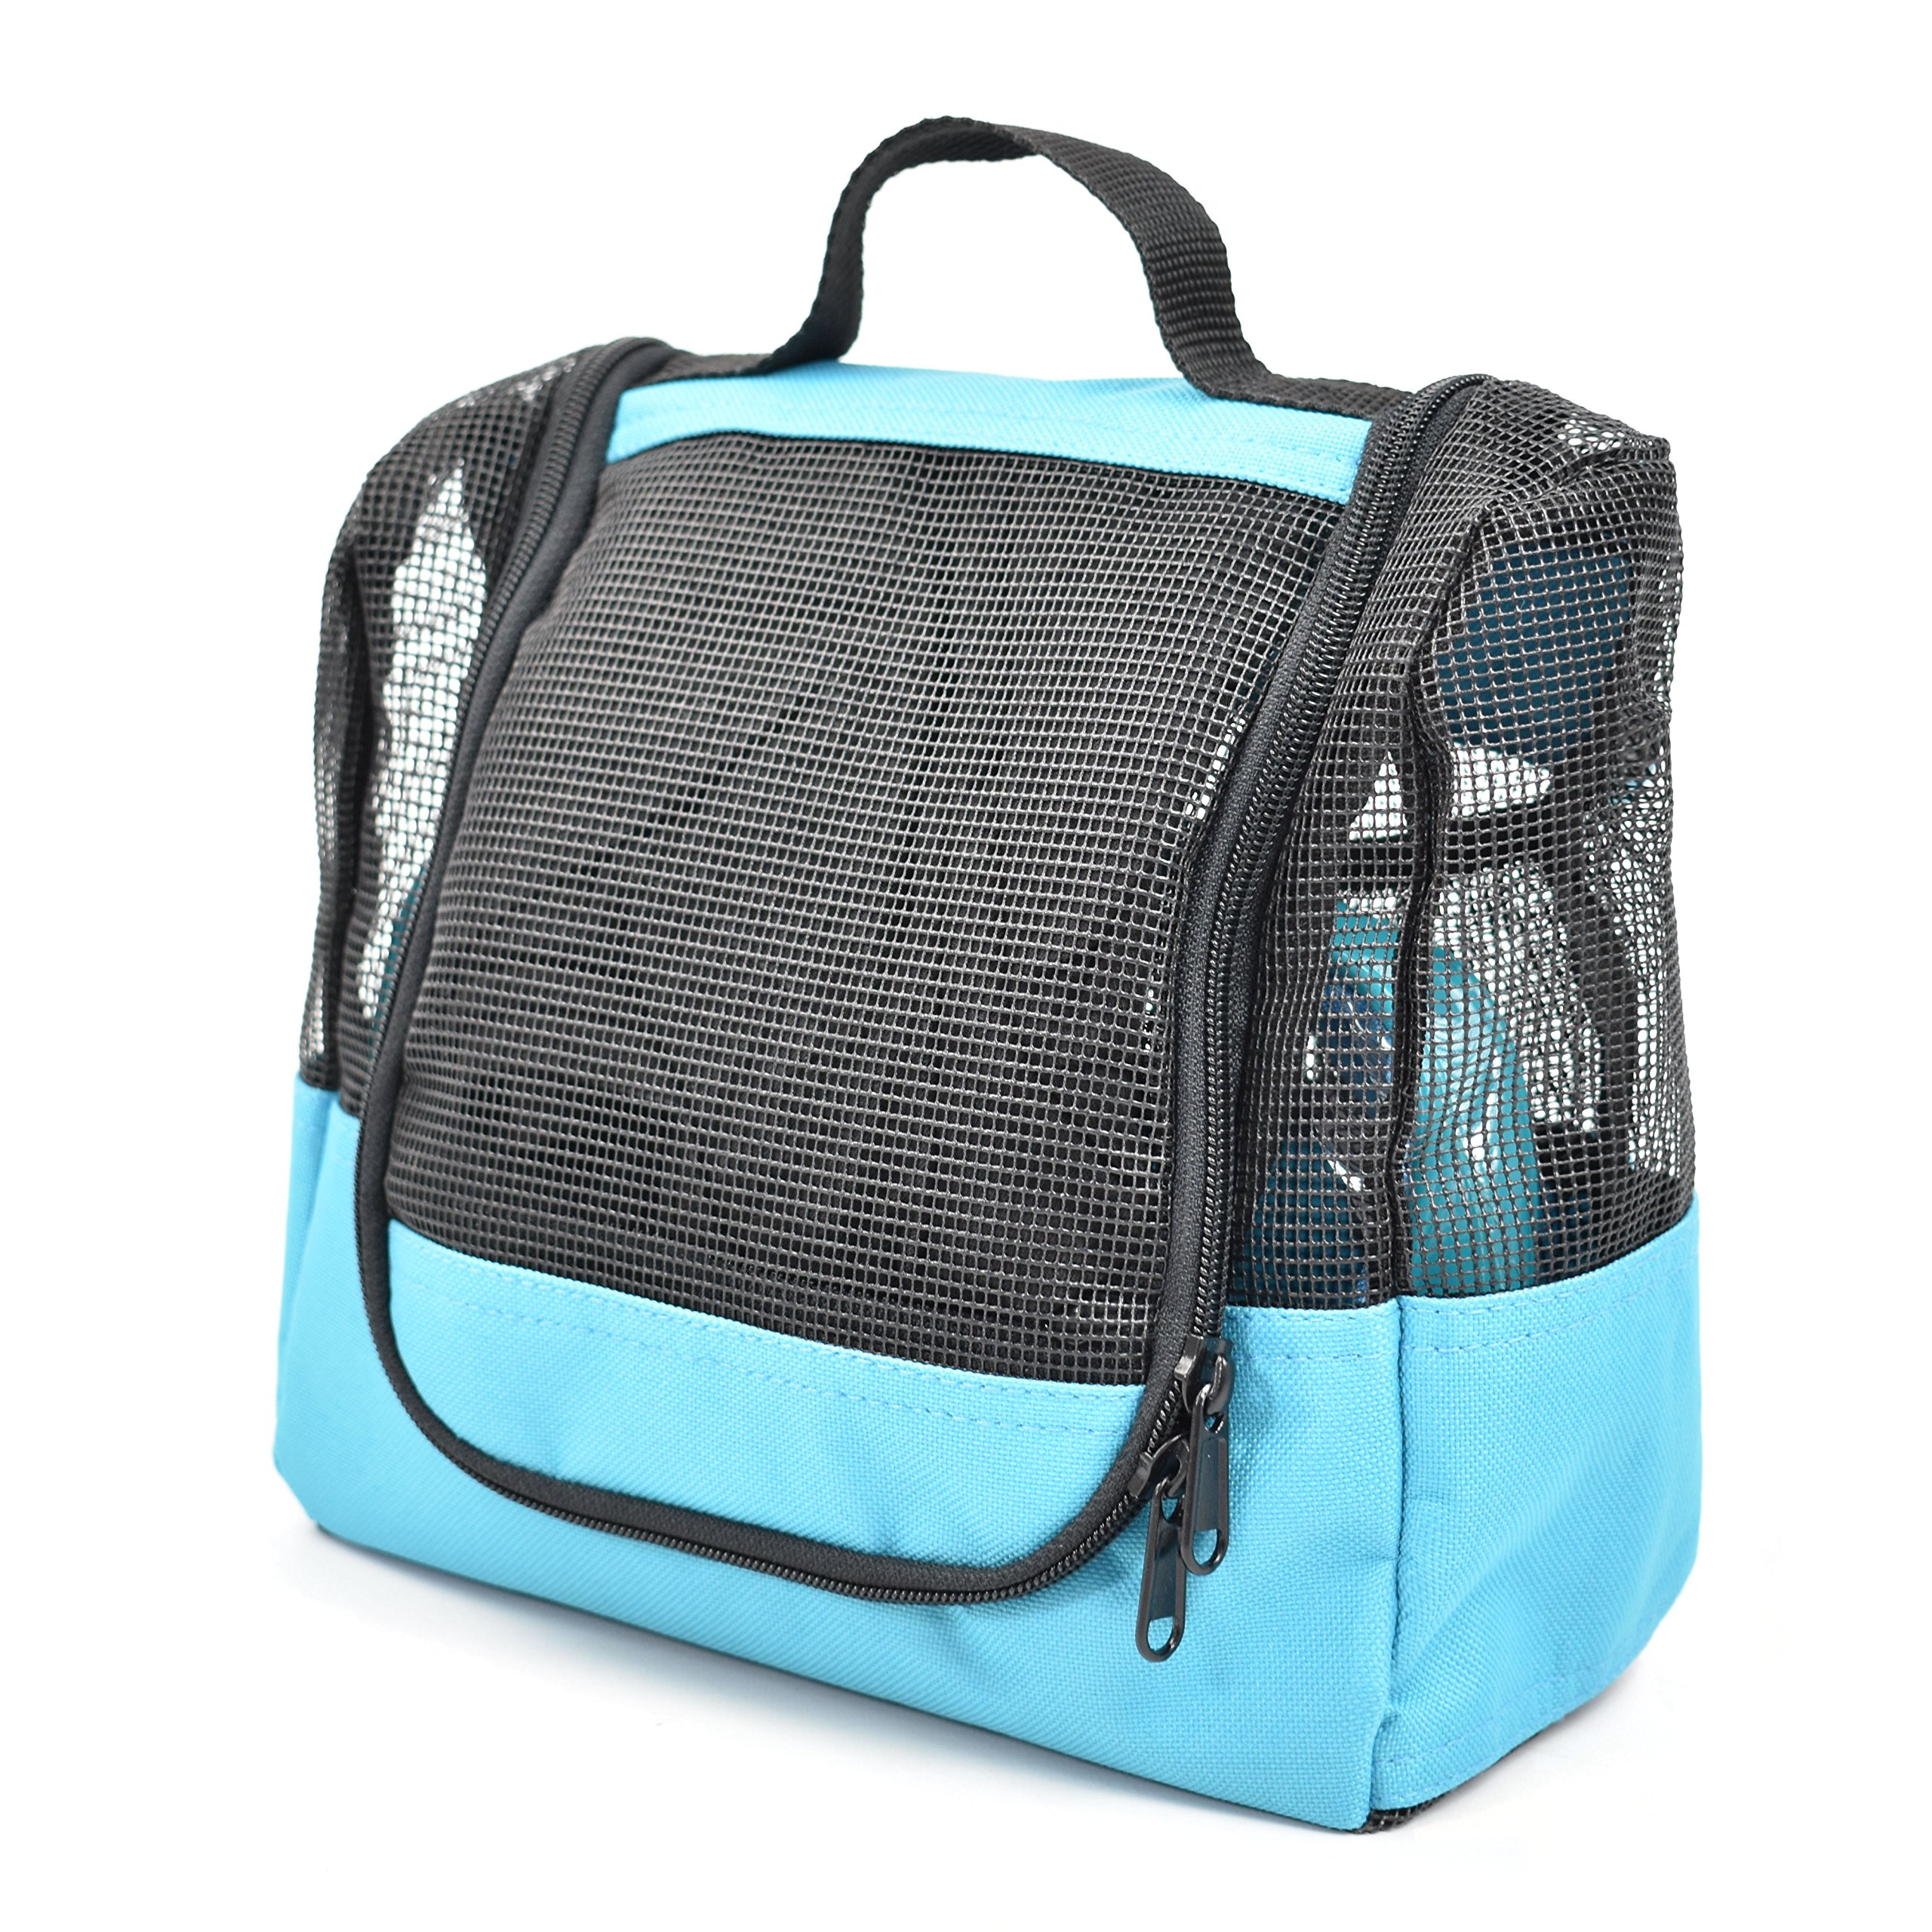 Shower Caddy Case Organizer Tote to Hang in the Shower plus Free Toiletries Bag - by The Fine Living Co USA